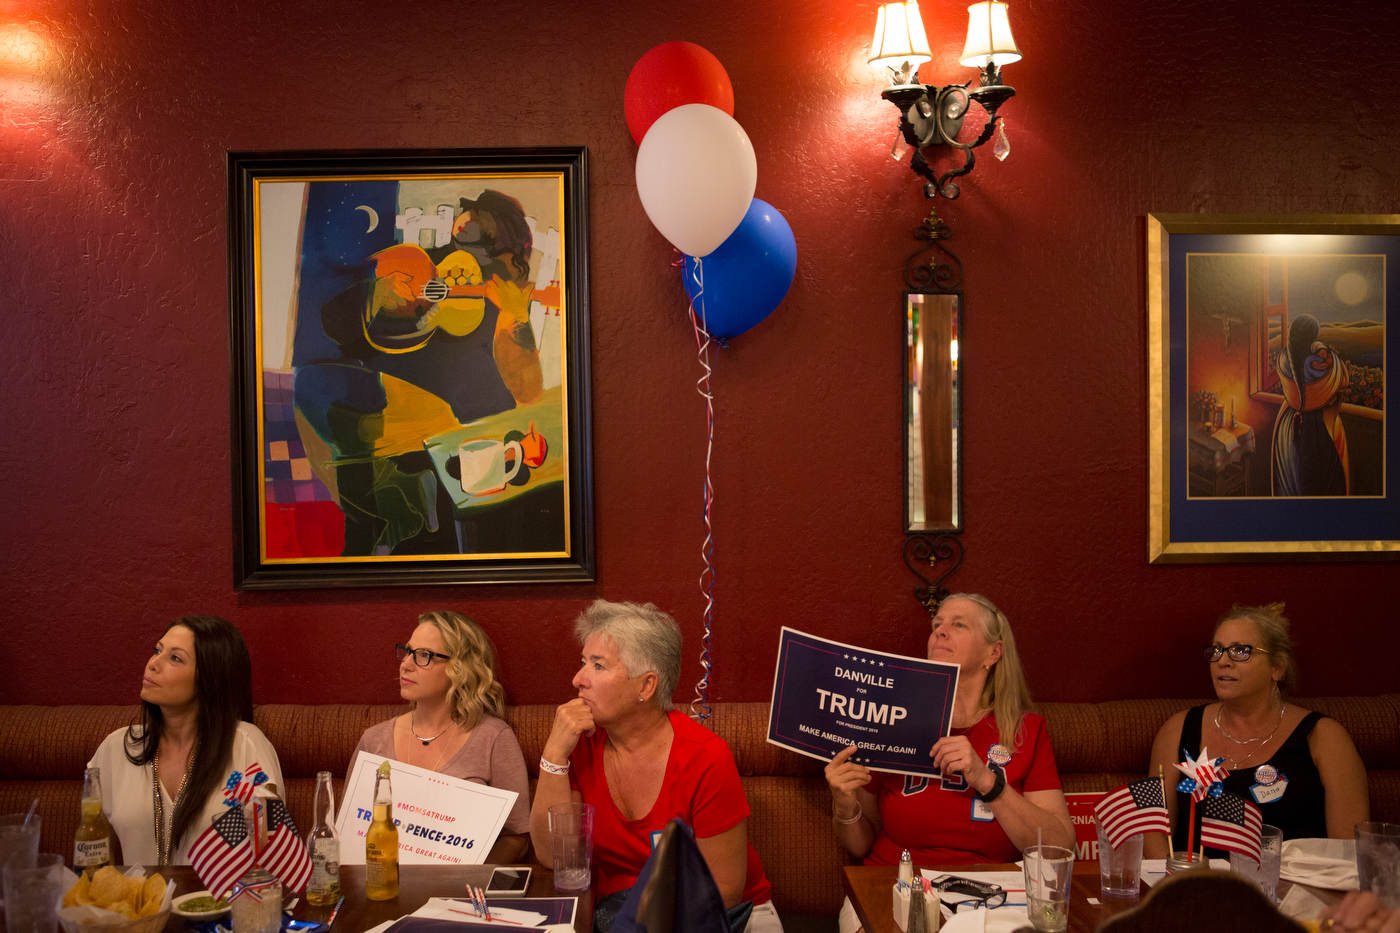 Trump supporters watch the first debate | Danville, California.